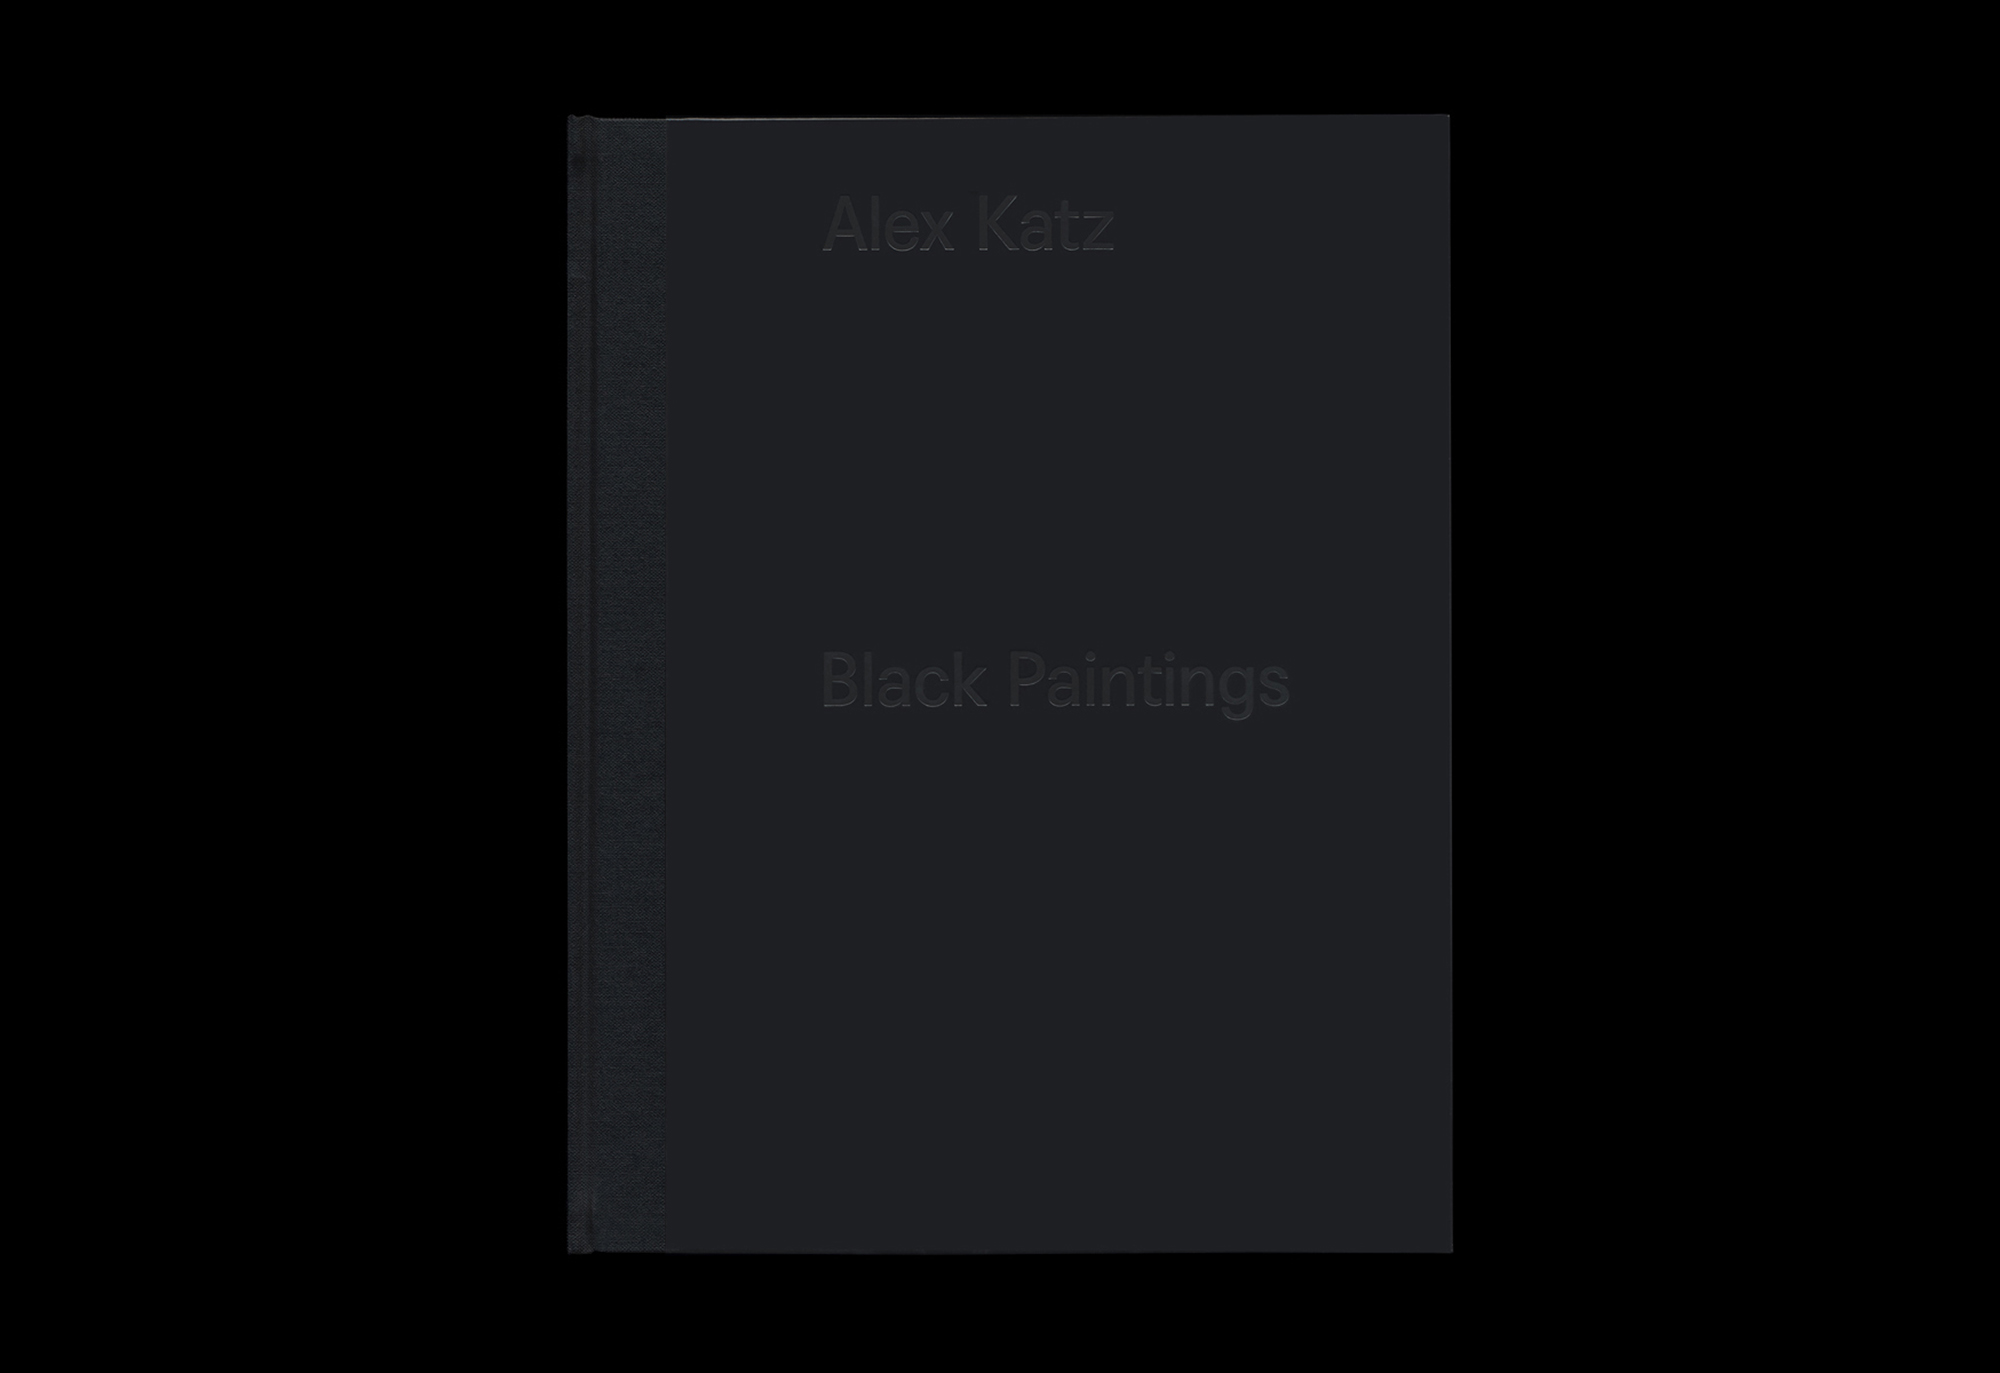 Cover image: Alex Katz: Black Paintings (2015)